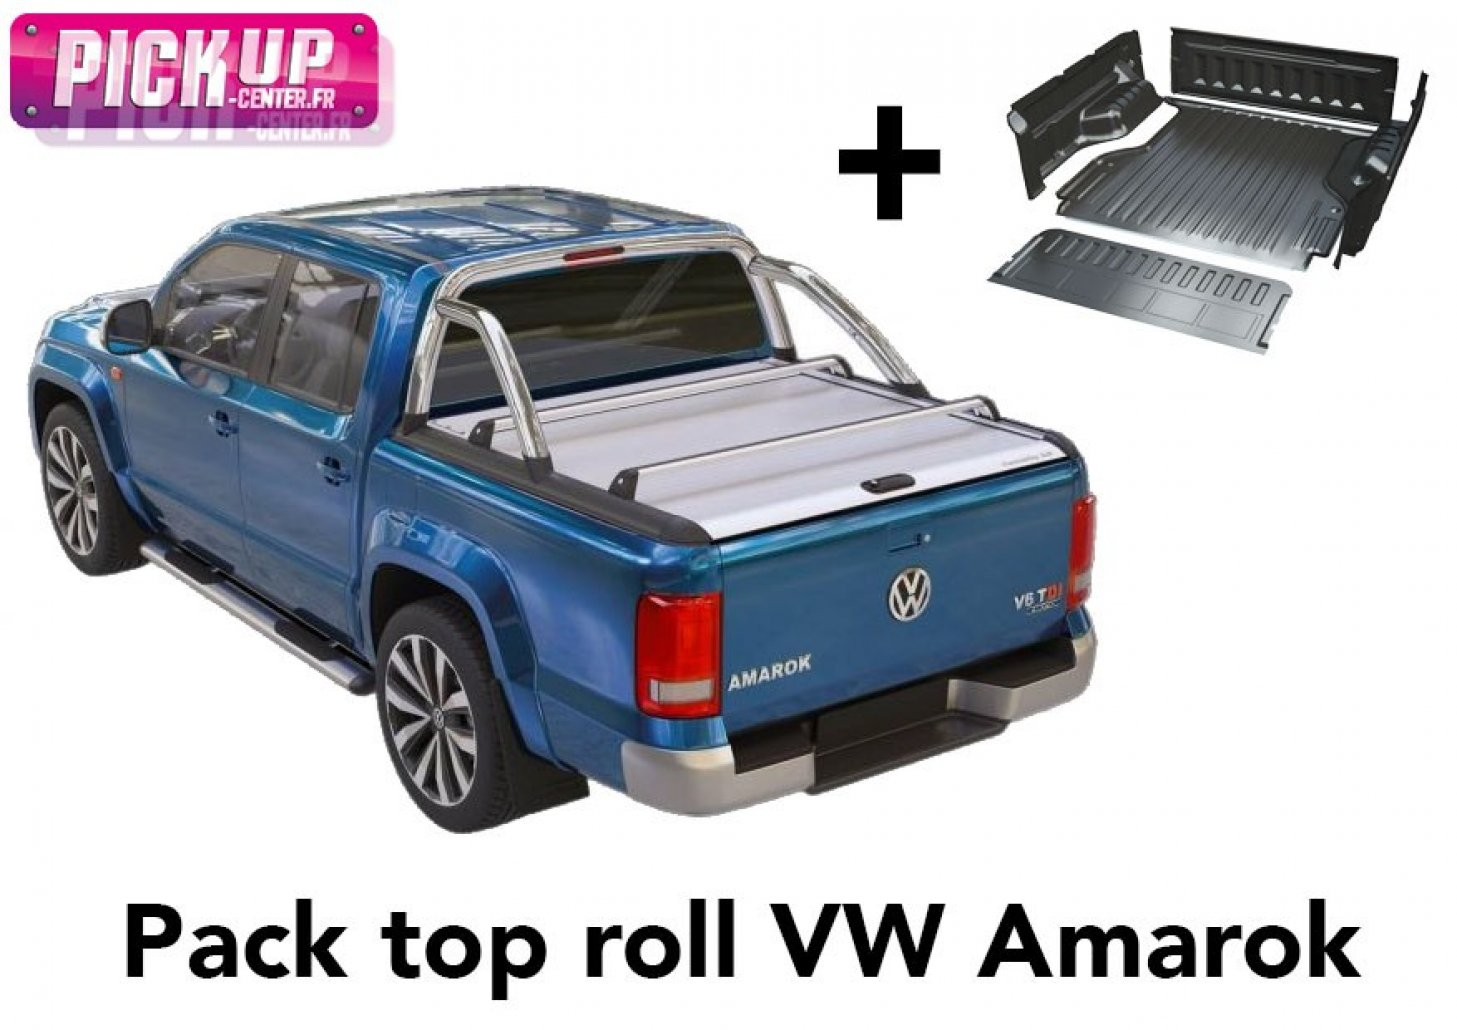 Promo Amarok sur www.pickup-center.fr